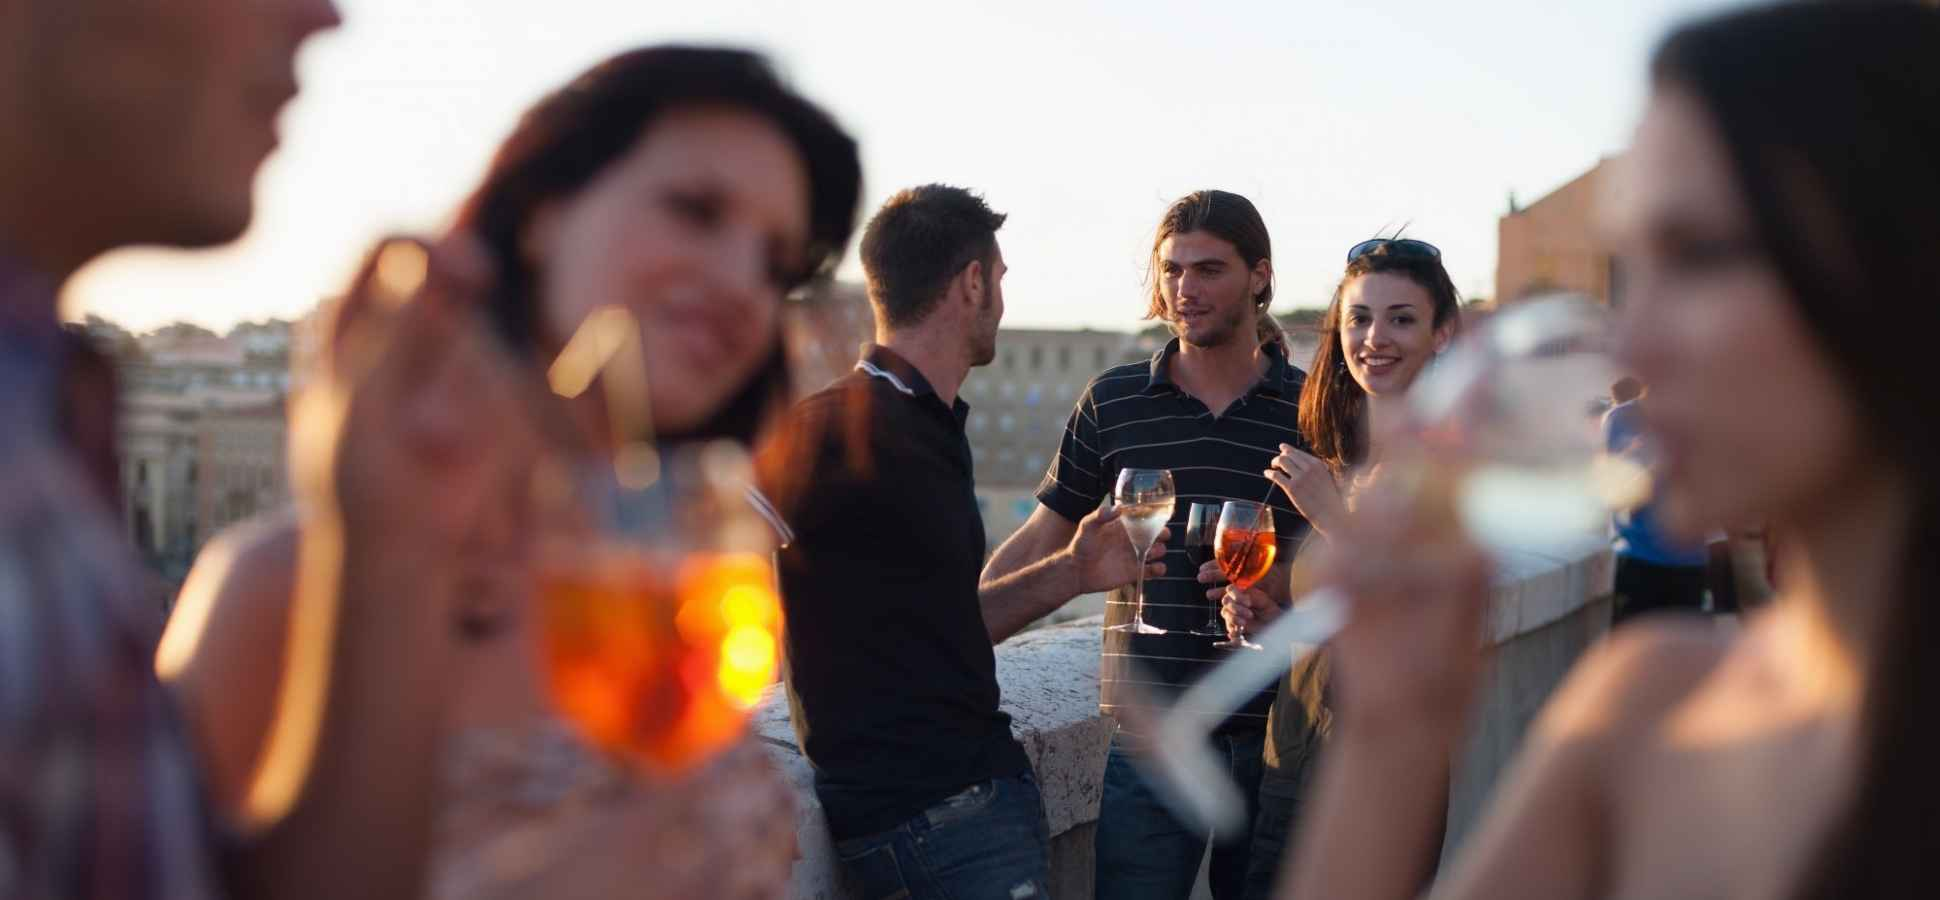 How To Network When You Hate Small Talk